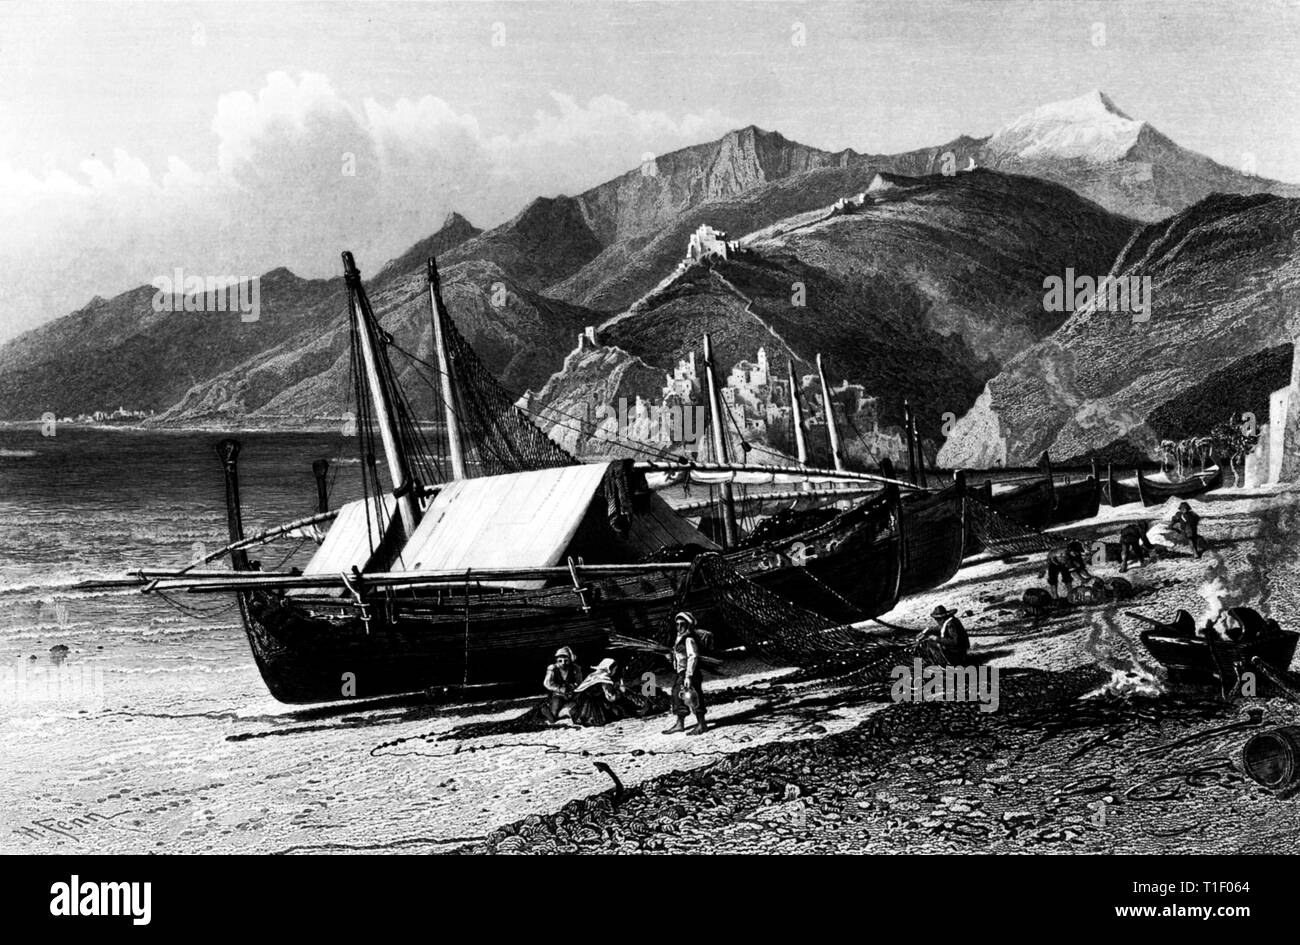 Italy, Ventimiglia, the beach with fishing boats and fishermen, original text: Ventimiglia on the Cornice Road, steel engraving by A. Krausse after Harry Fenn, published by Cassell & Company Ltd., about 1870., Artist's Copyright has not to be cleared - Stock Image